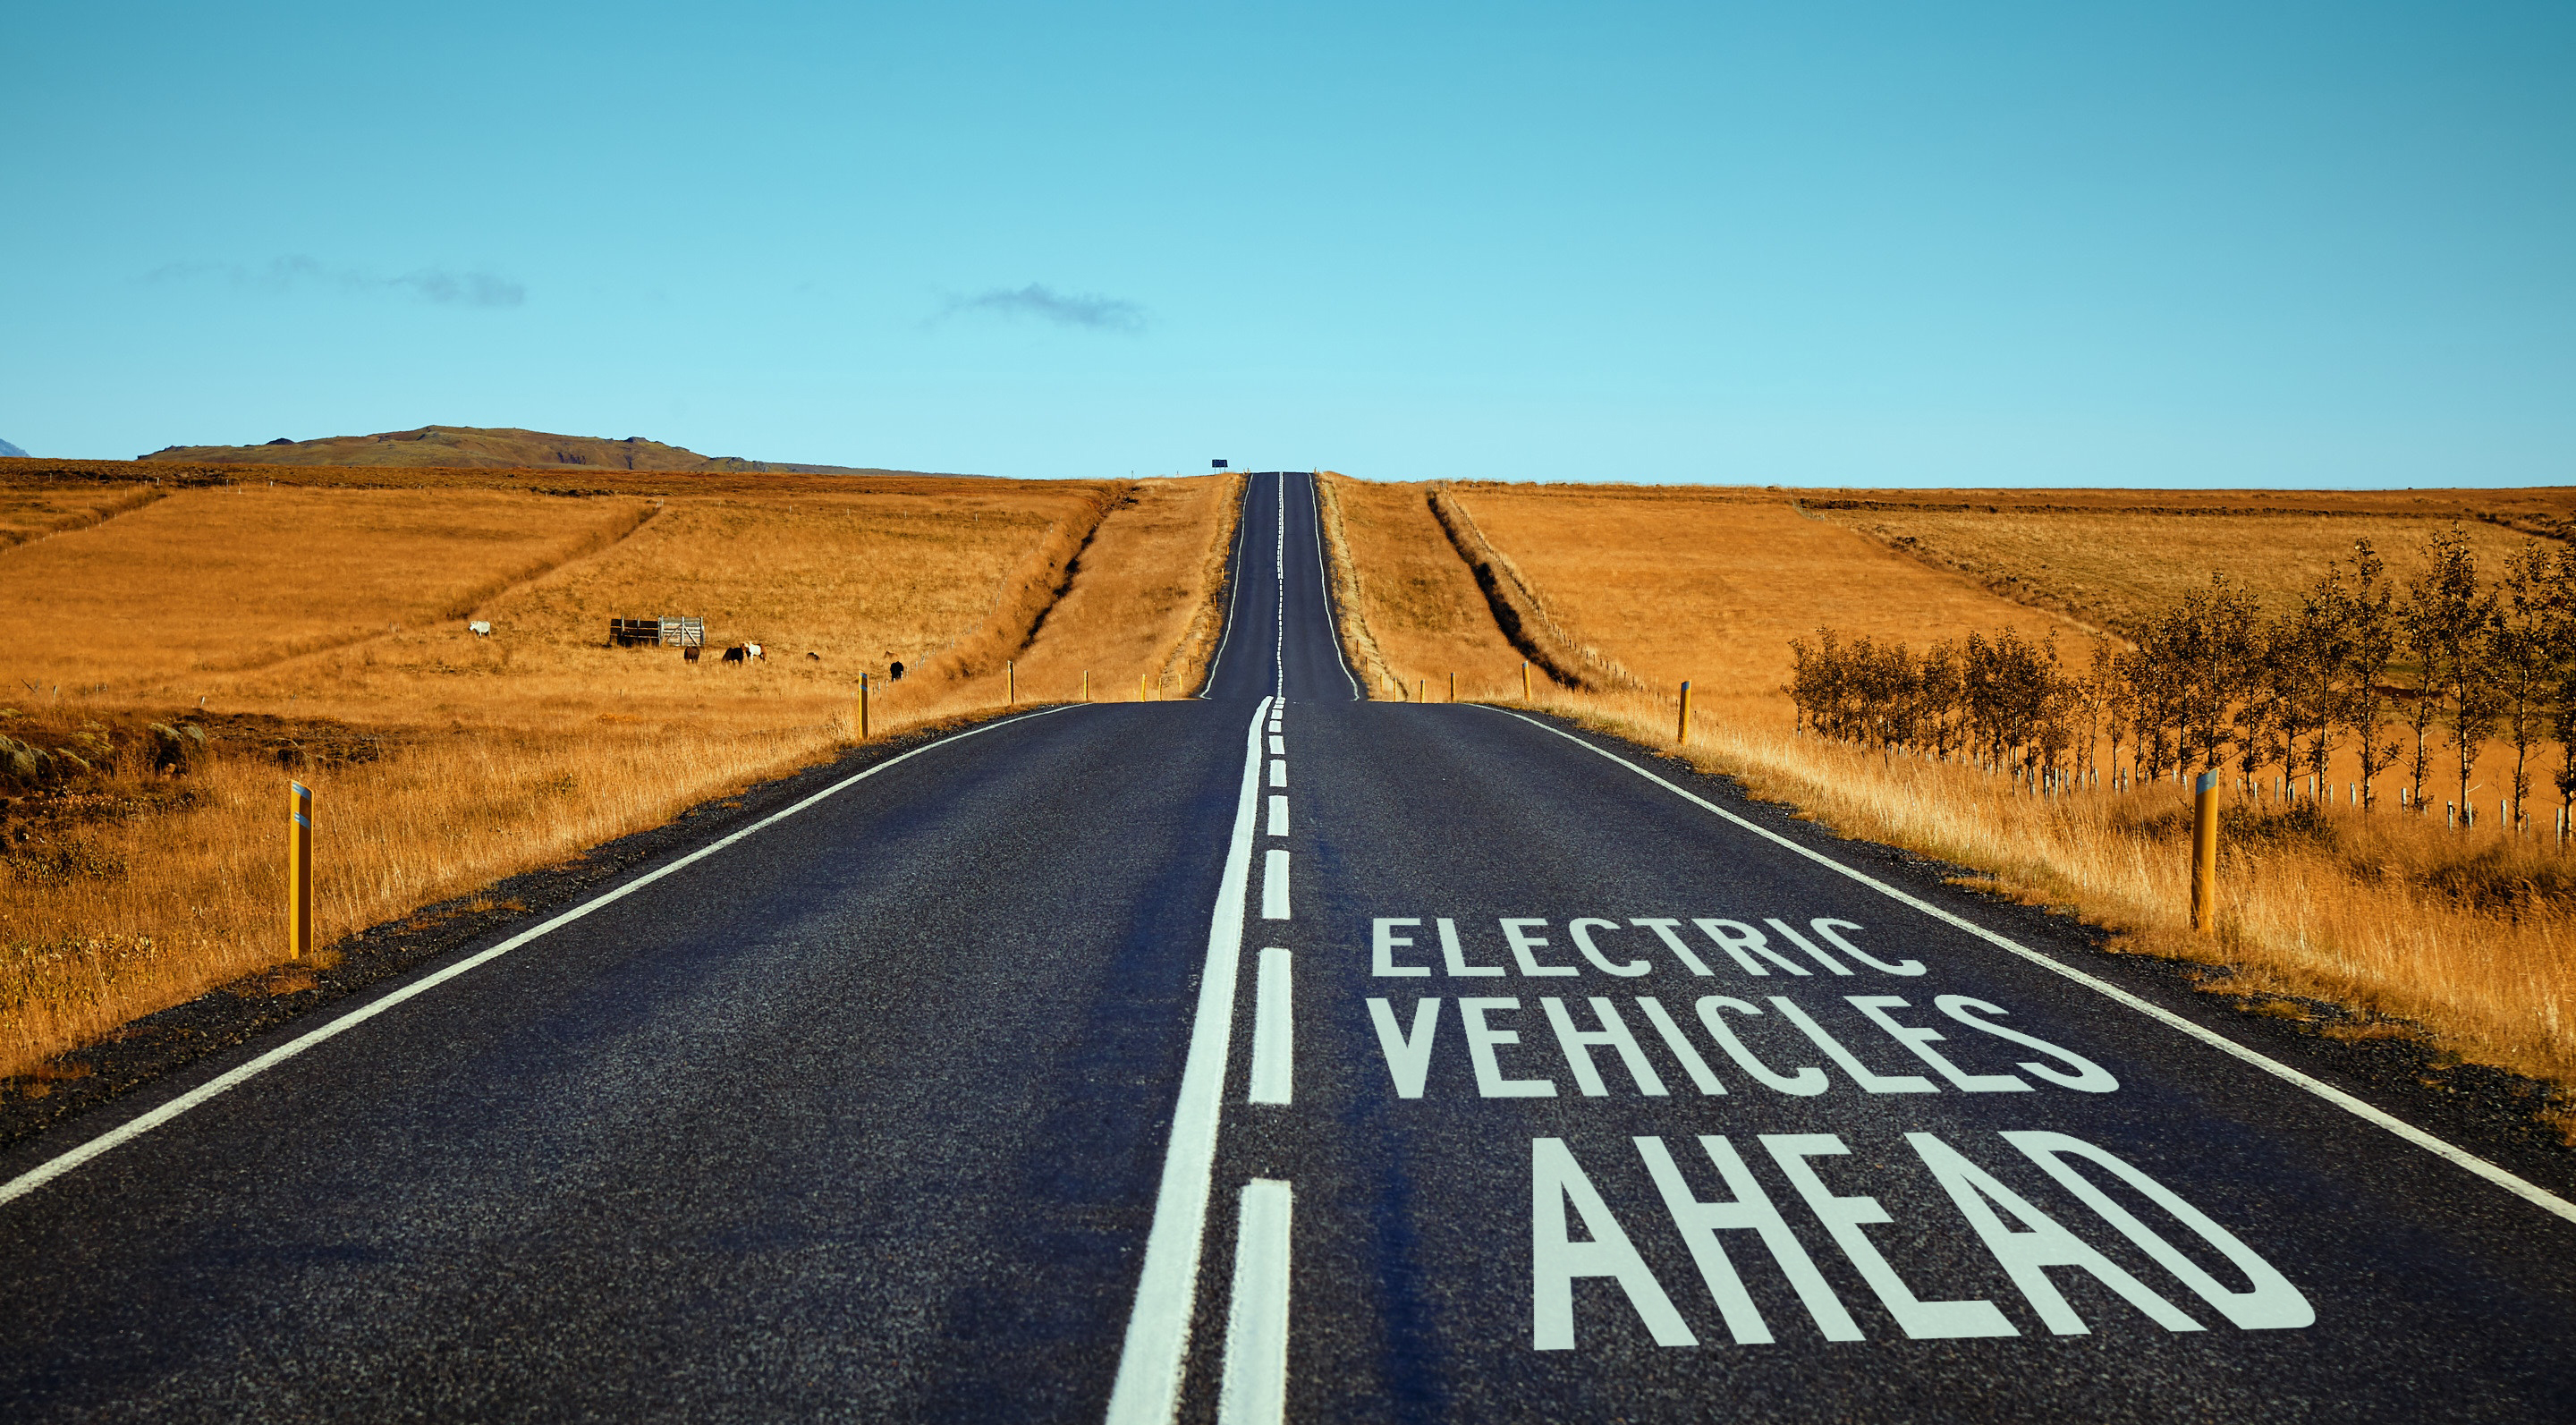 Electric vehicles ahead